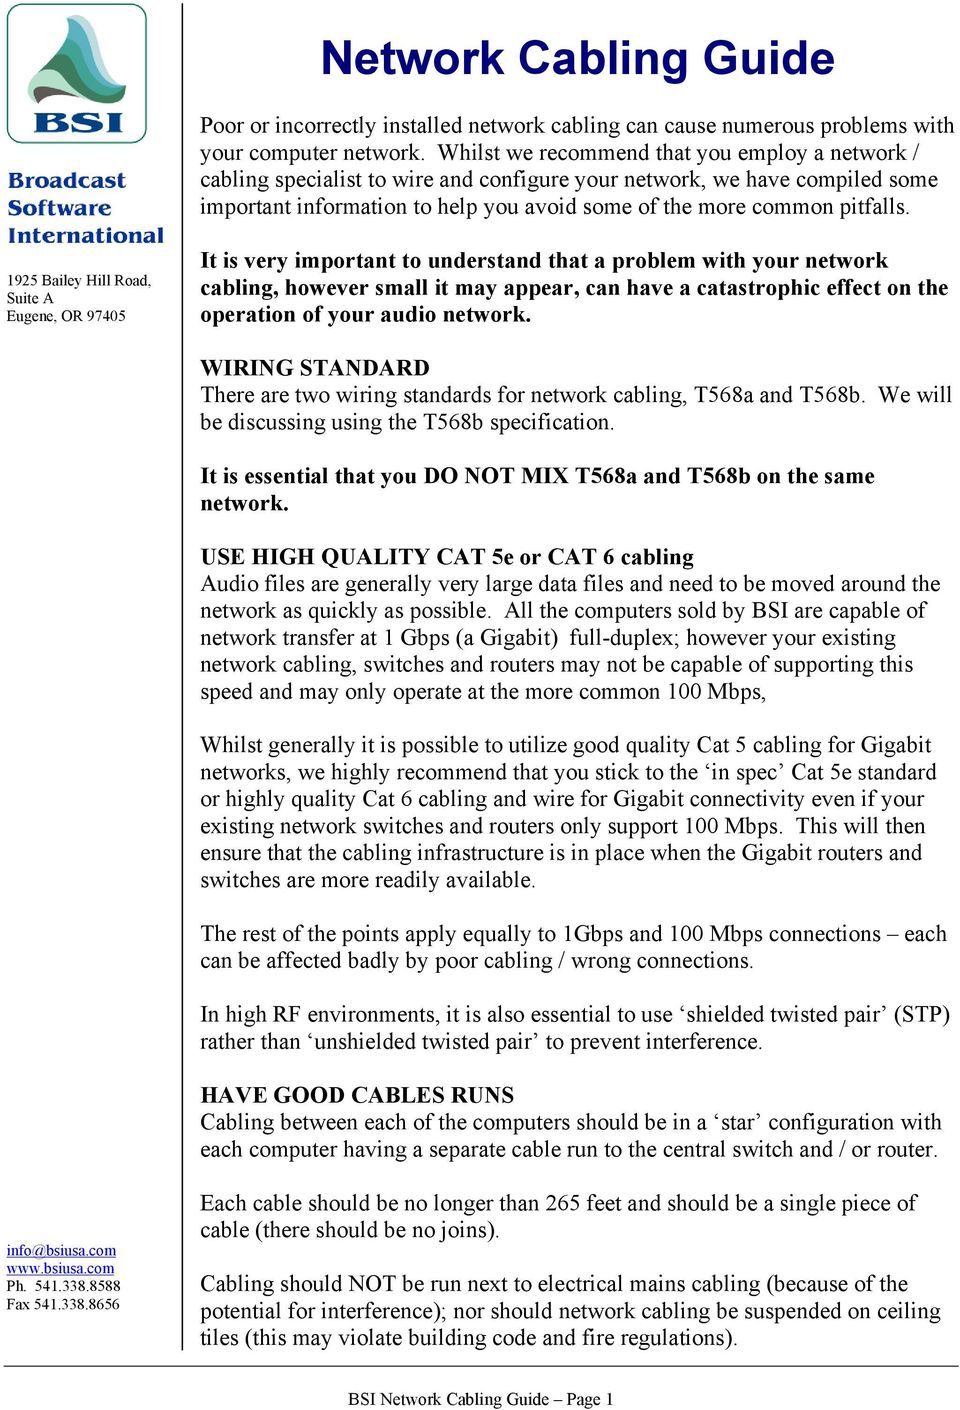 hight resolution of bsi network cabling guide page 1 1925 bailey hill road suite a eugene or 97405 it is very important to